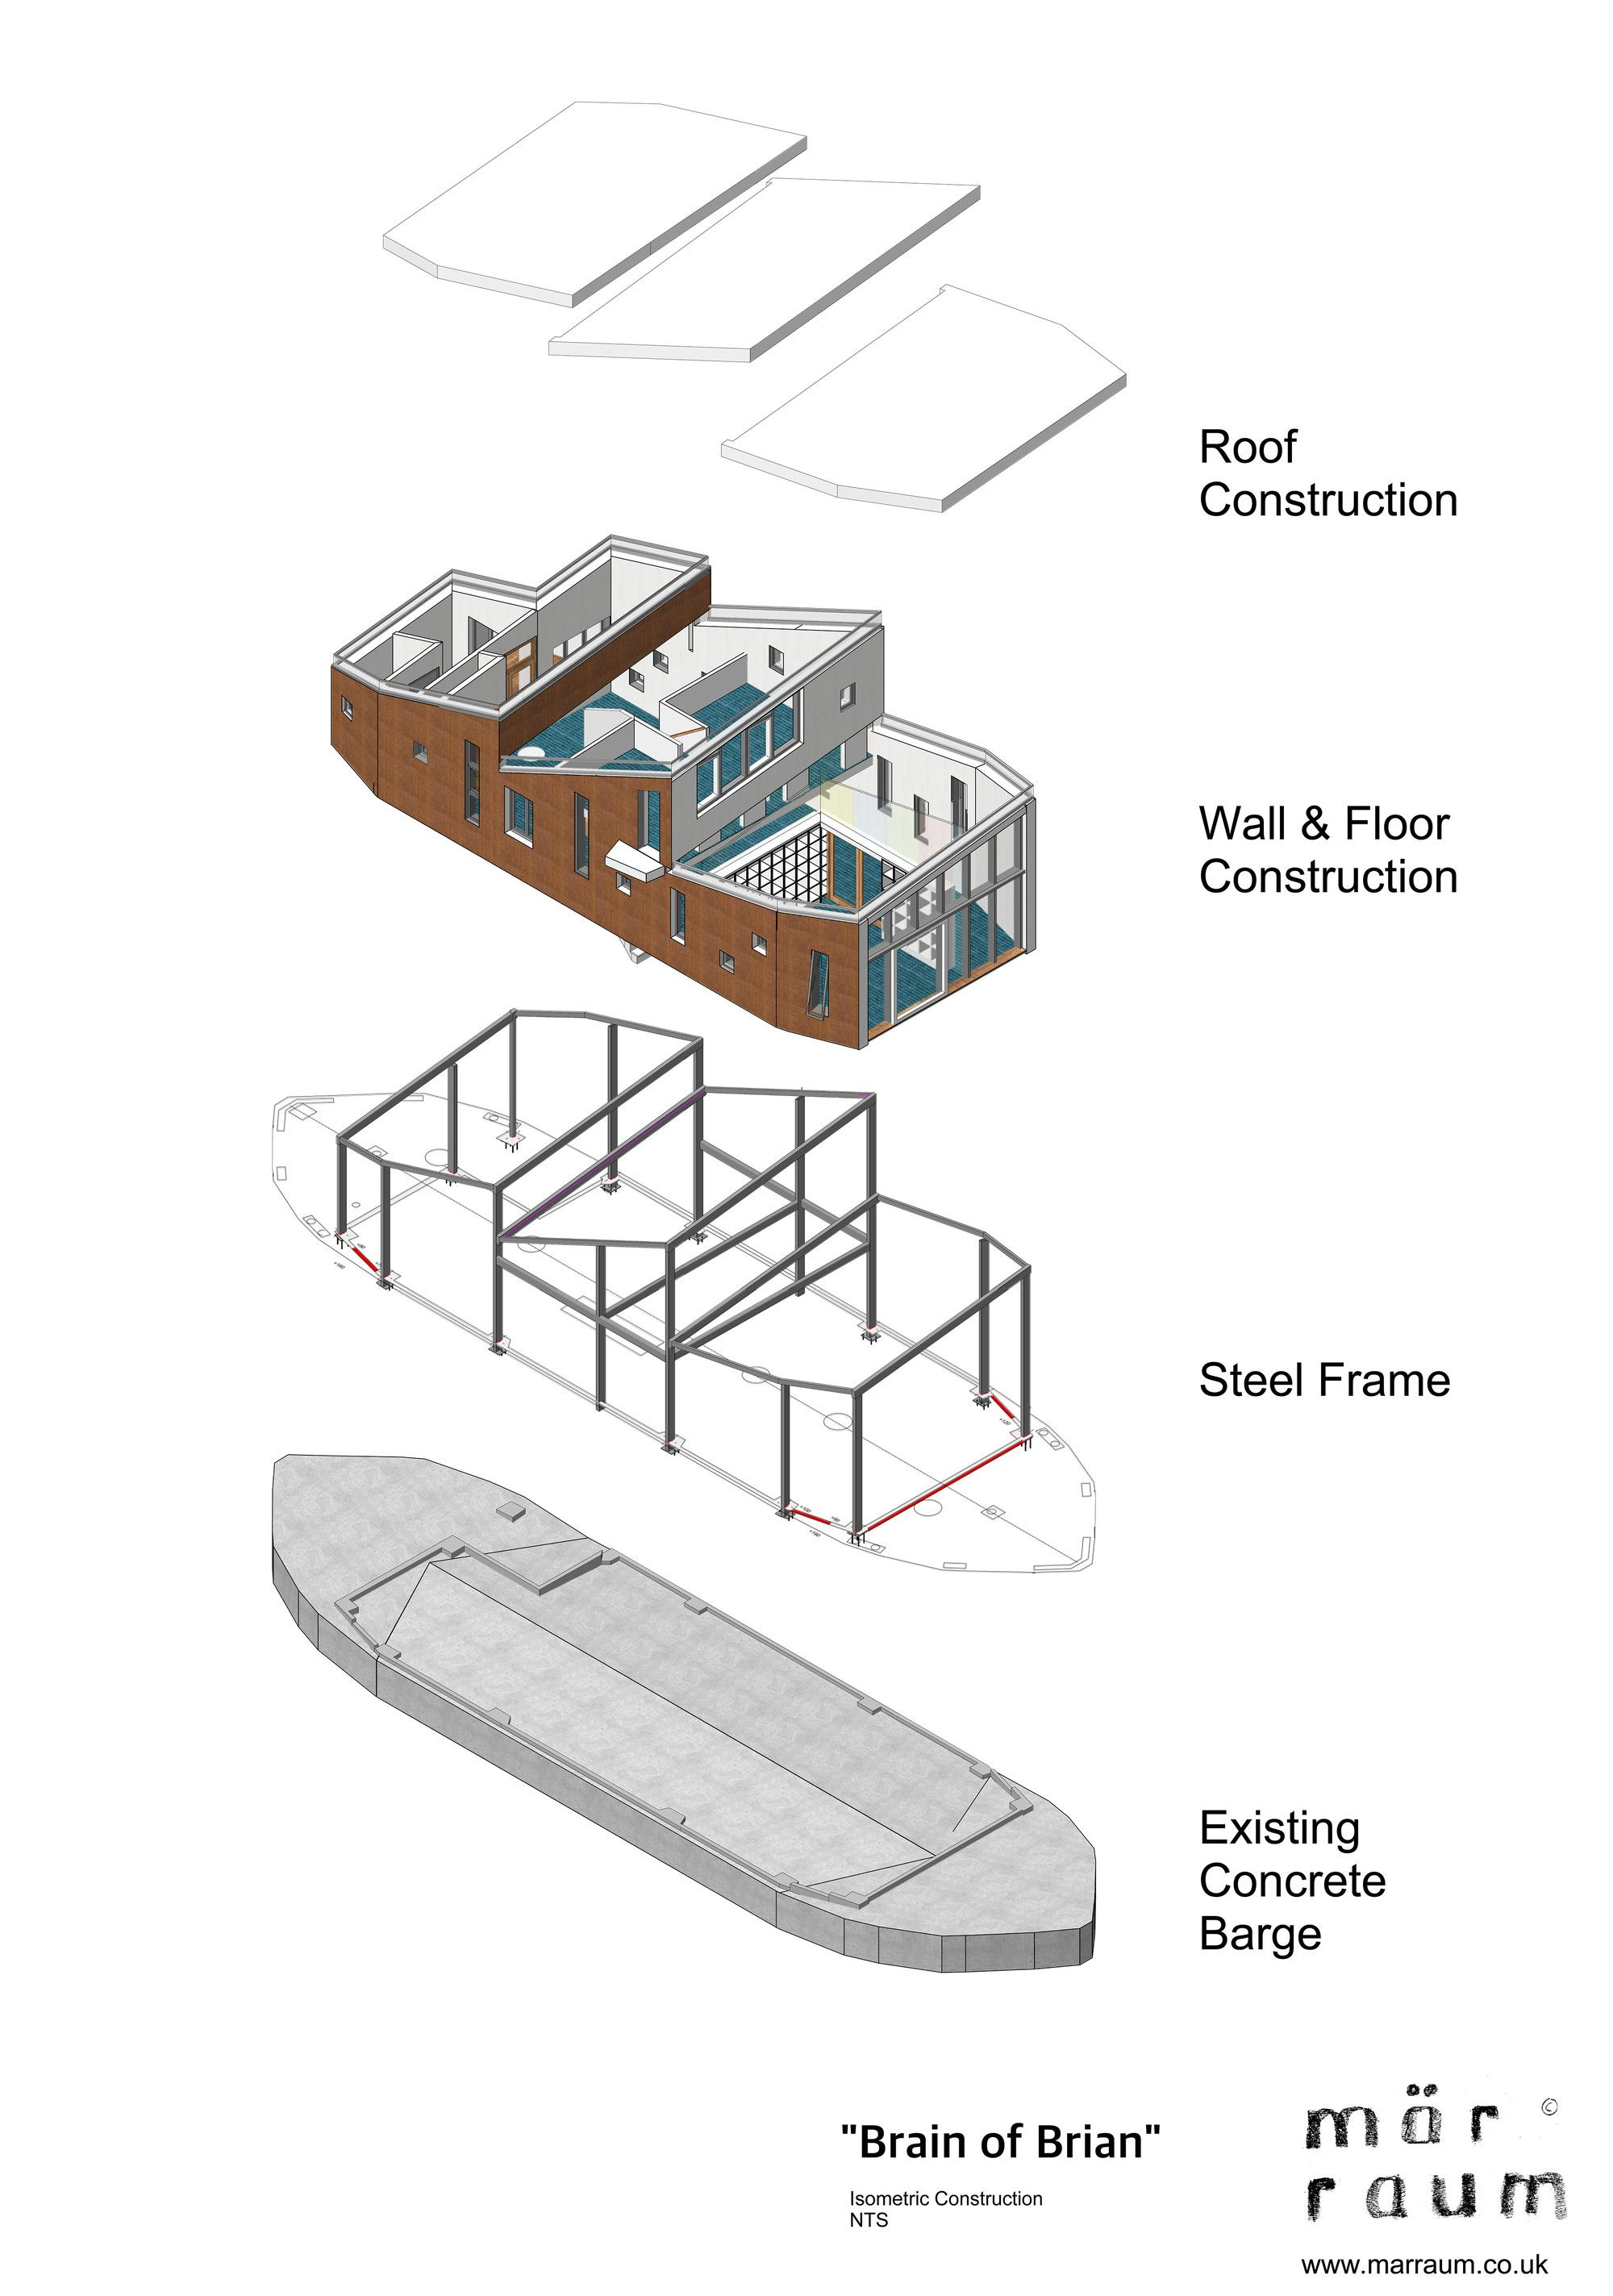 Pin By Phyllis Tsui On Tech Floating Architecture Barge Architecture